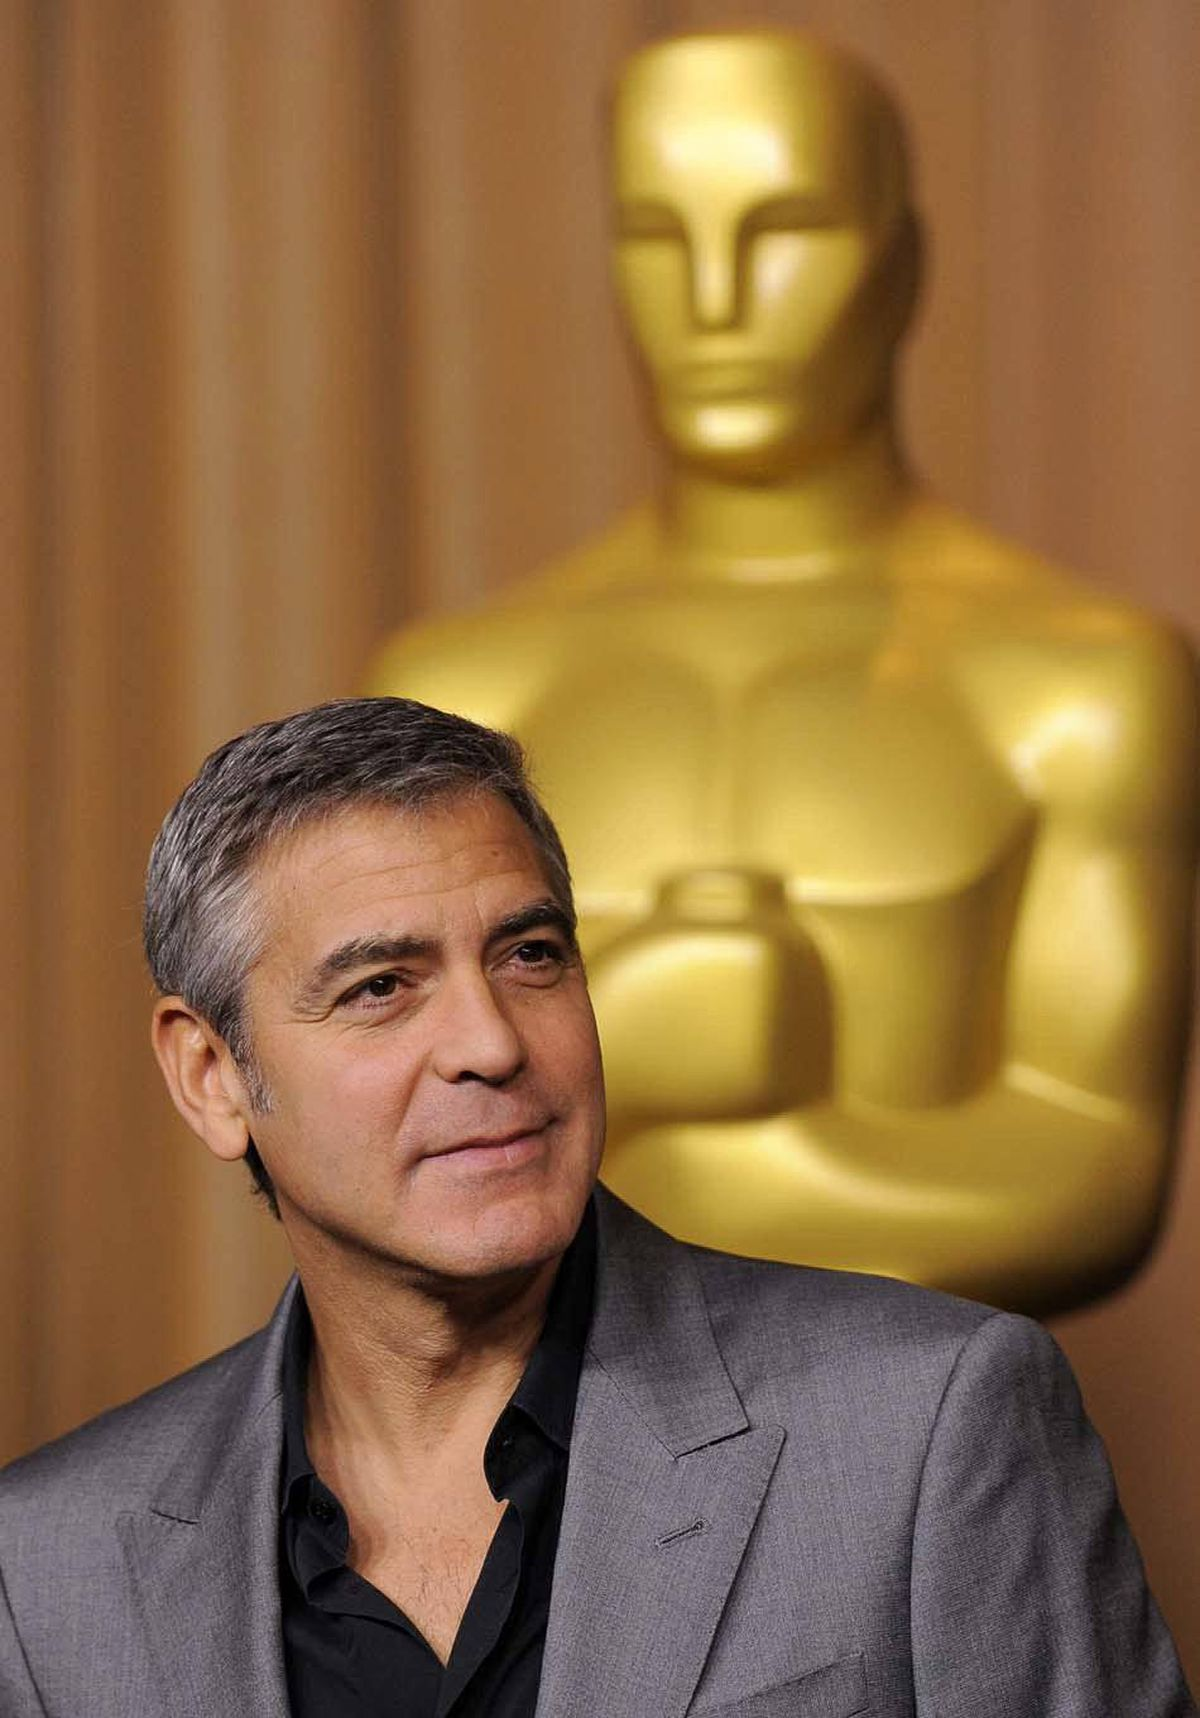 A bemused George Clooney arrives at the Academy Awards nominees luncheon in Beverly Hills, Calif., on Monday.